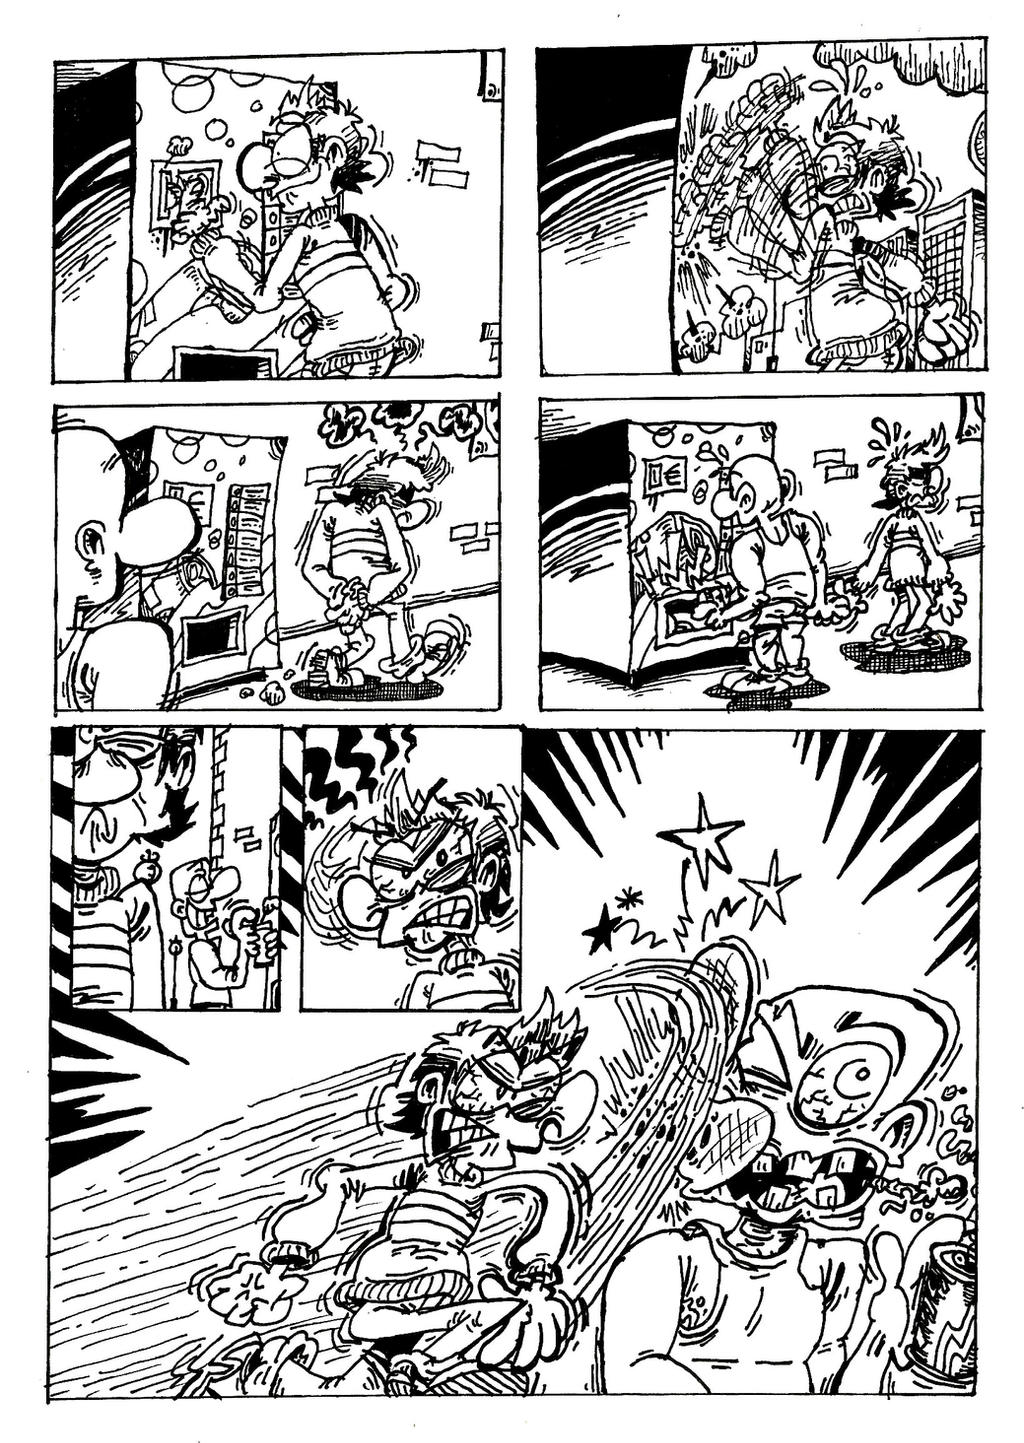 Comic Book Page 2 - American Edition. by ANDREU-T